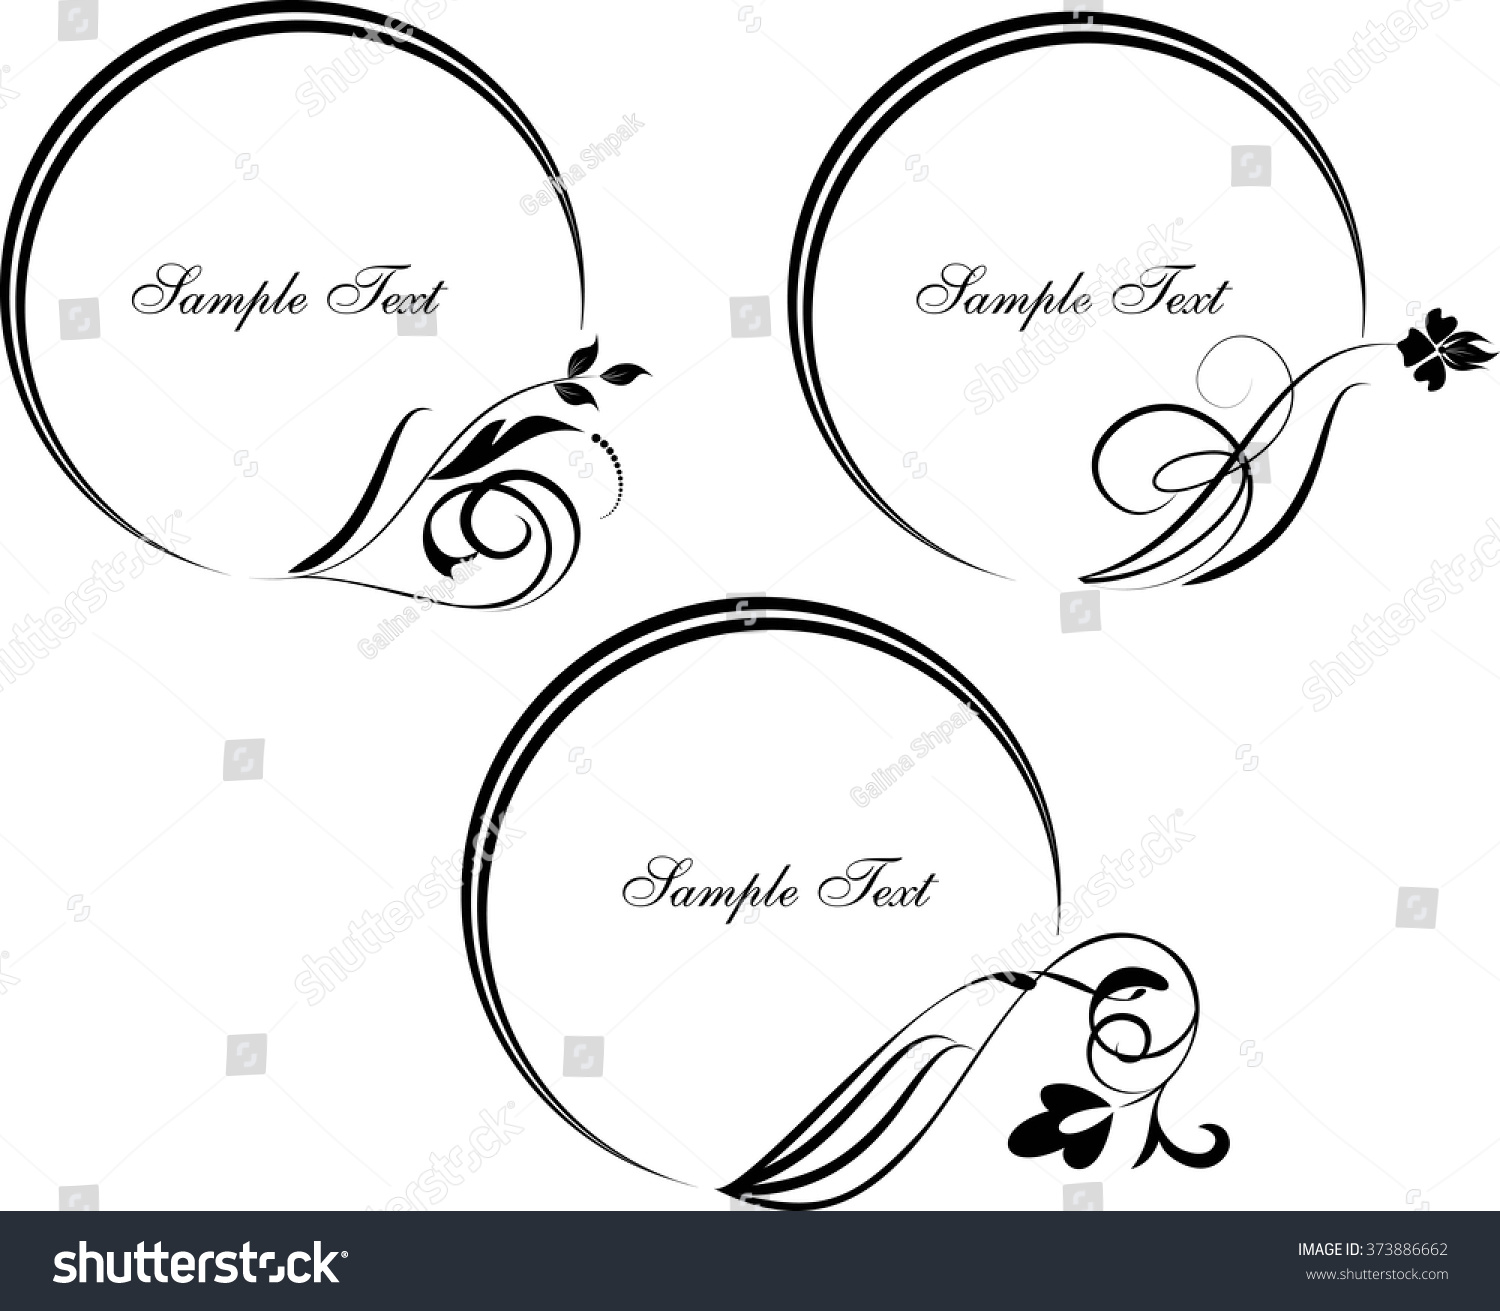 Round frame with decorative branch vector illustration stock - Set Of Round Frame With Decorative Branch Vector Illustration